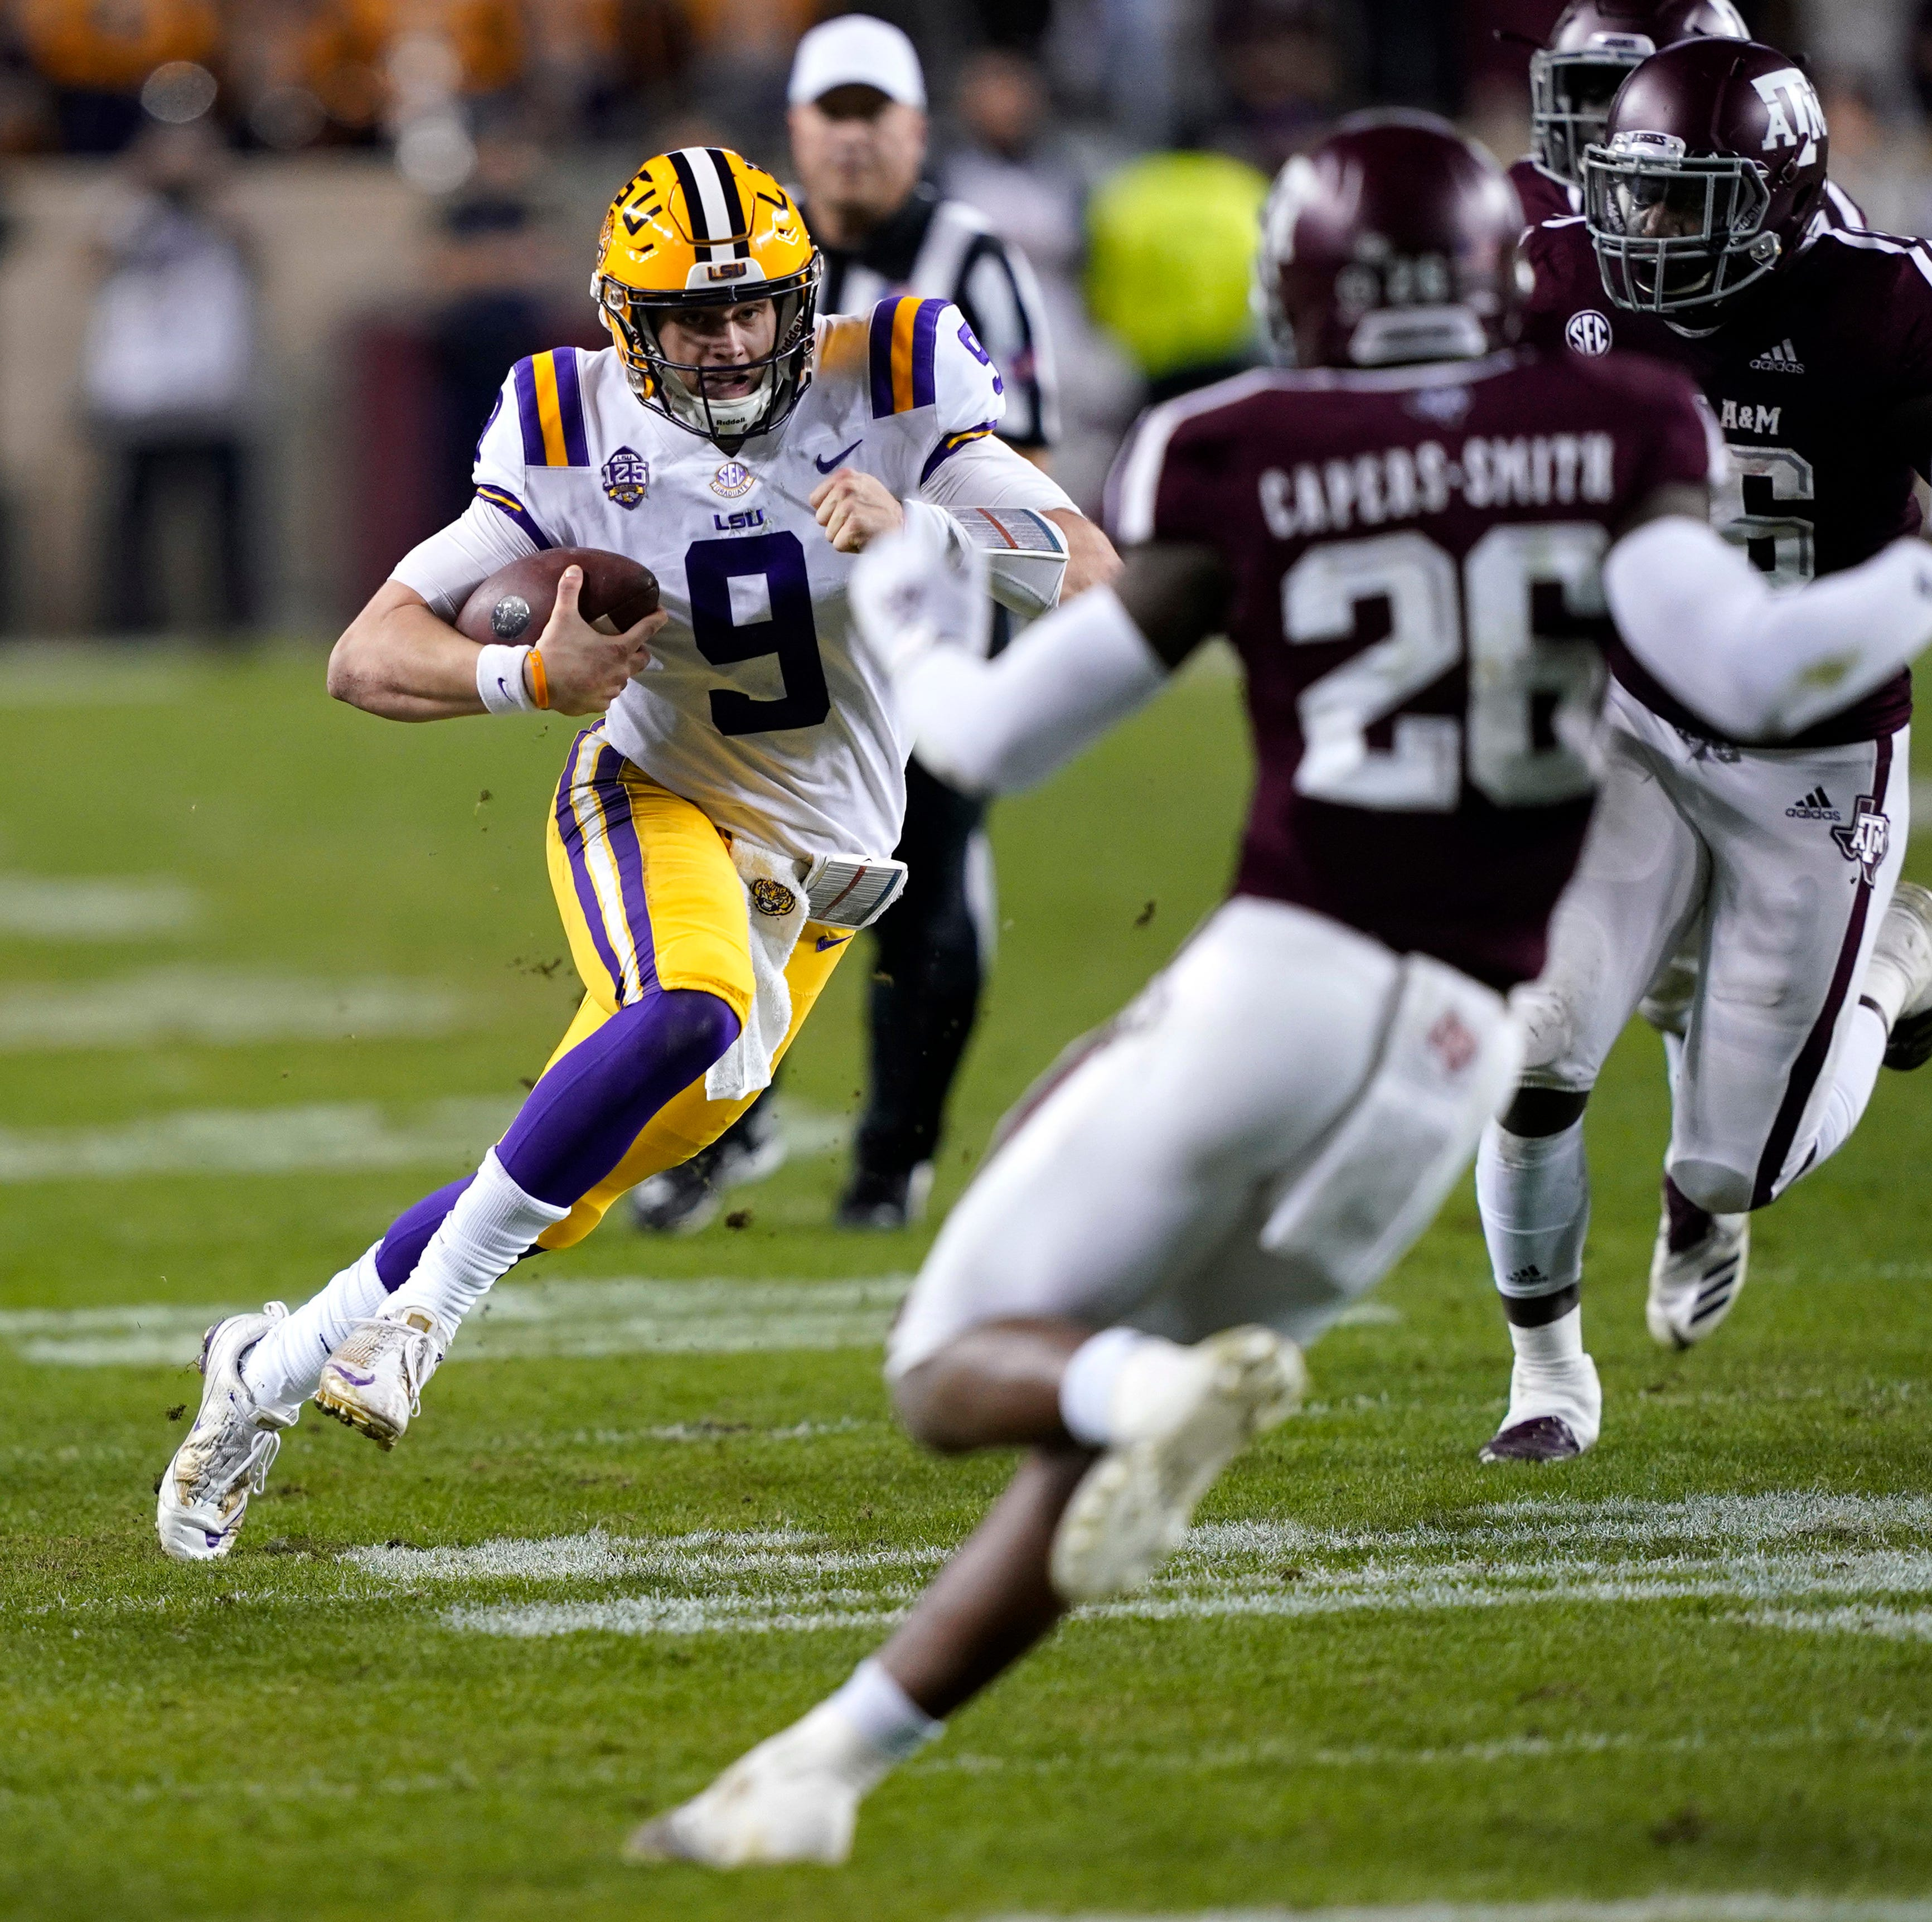 Run Joe Run! Burrow 'cut loose' at Texas A&M, and he'll keep running in bowl and in 2019